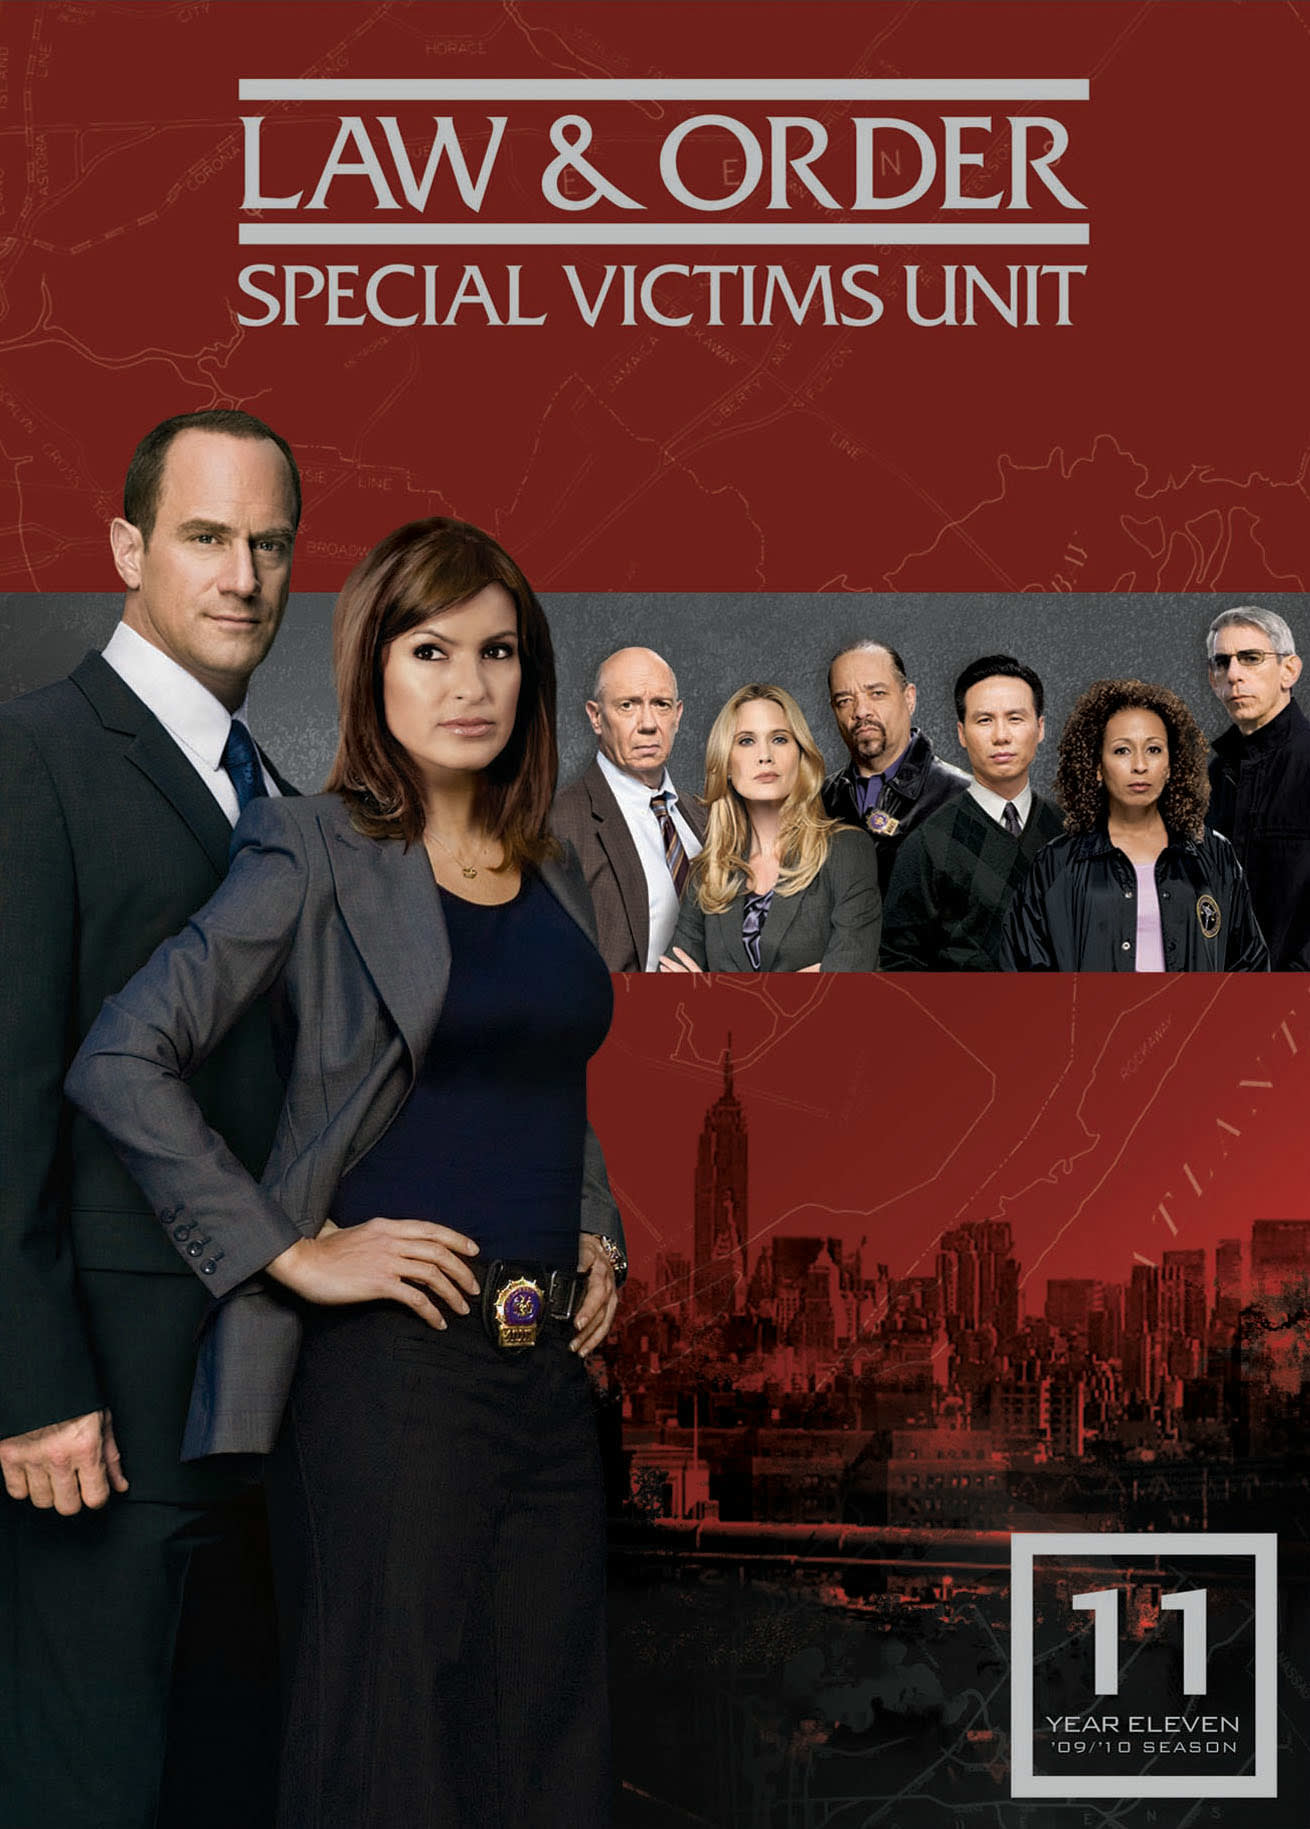 Law and Order - Special Victims Unit: Season 11 [DVD]